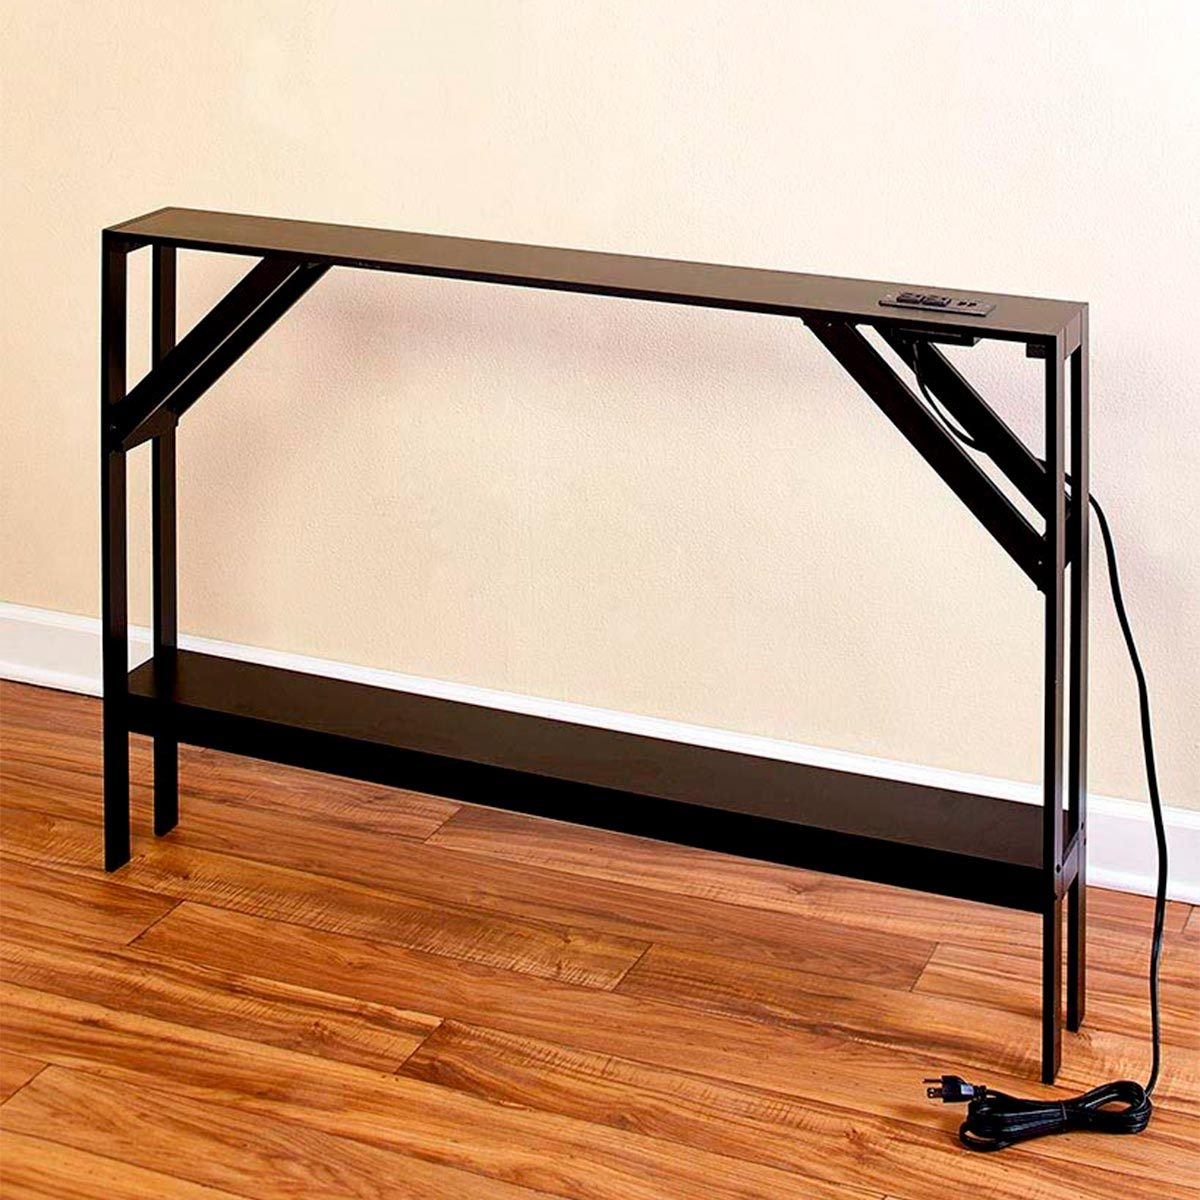 Skinny Table Behind the Couch